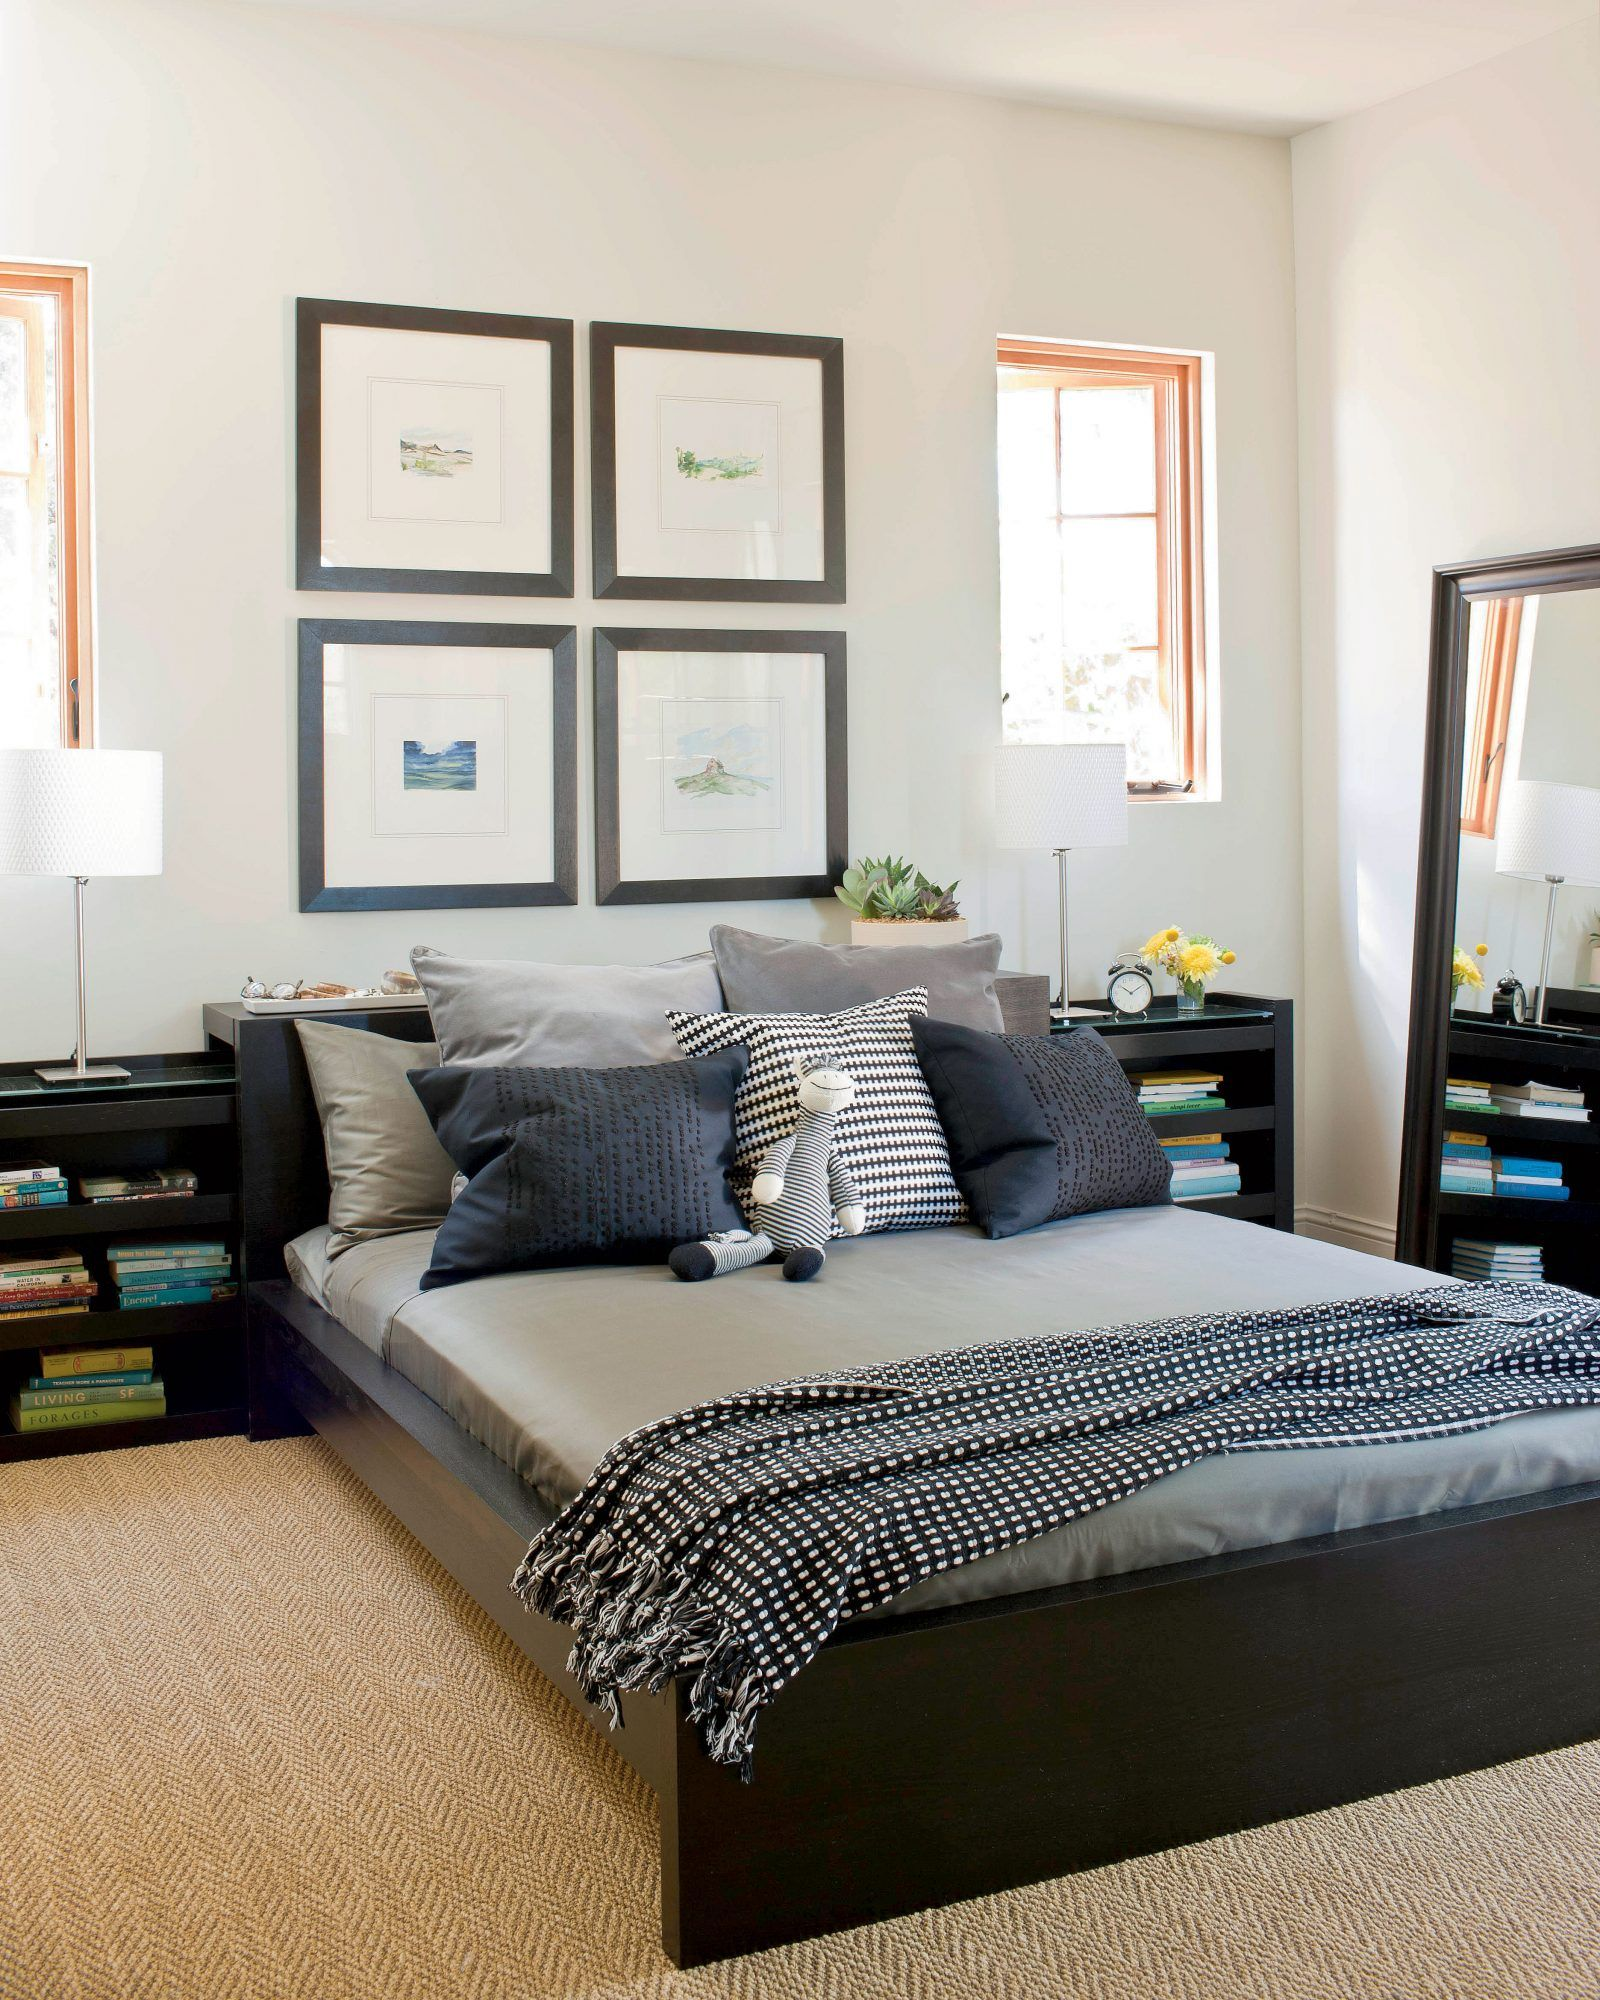 Gracious Guest Bedroom Decorating Ideas: Small Guest Bedroom, White Guest Bedroom, Guest Bedroom Decor